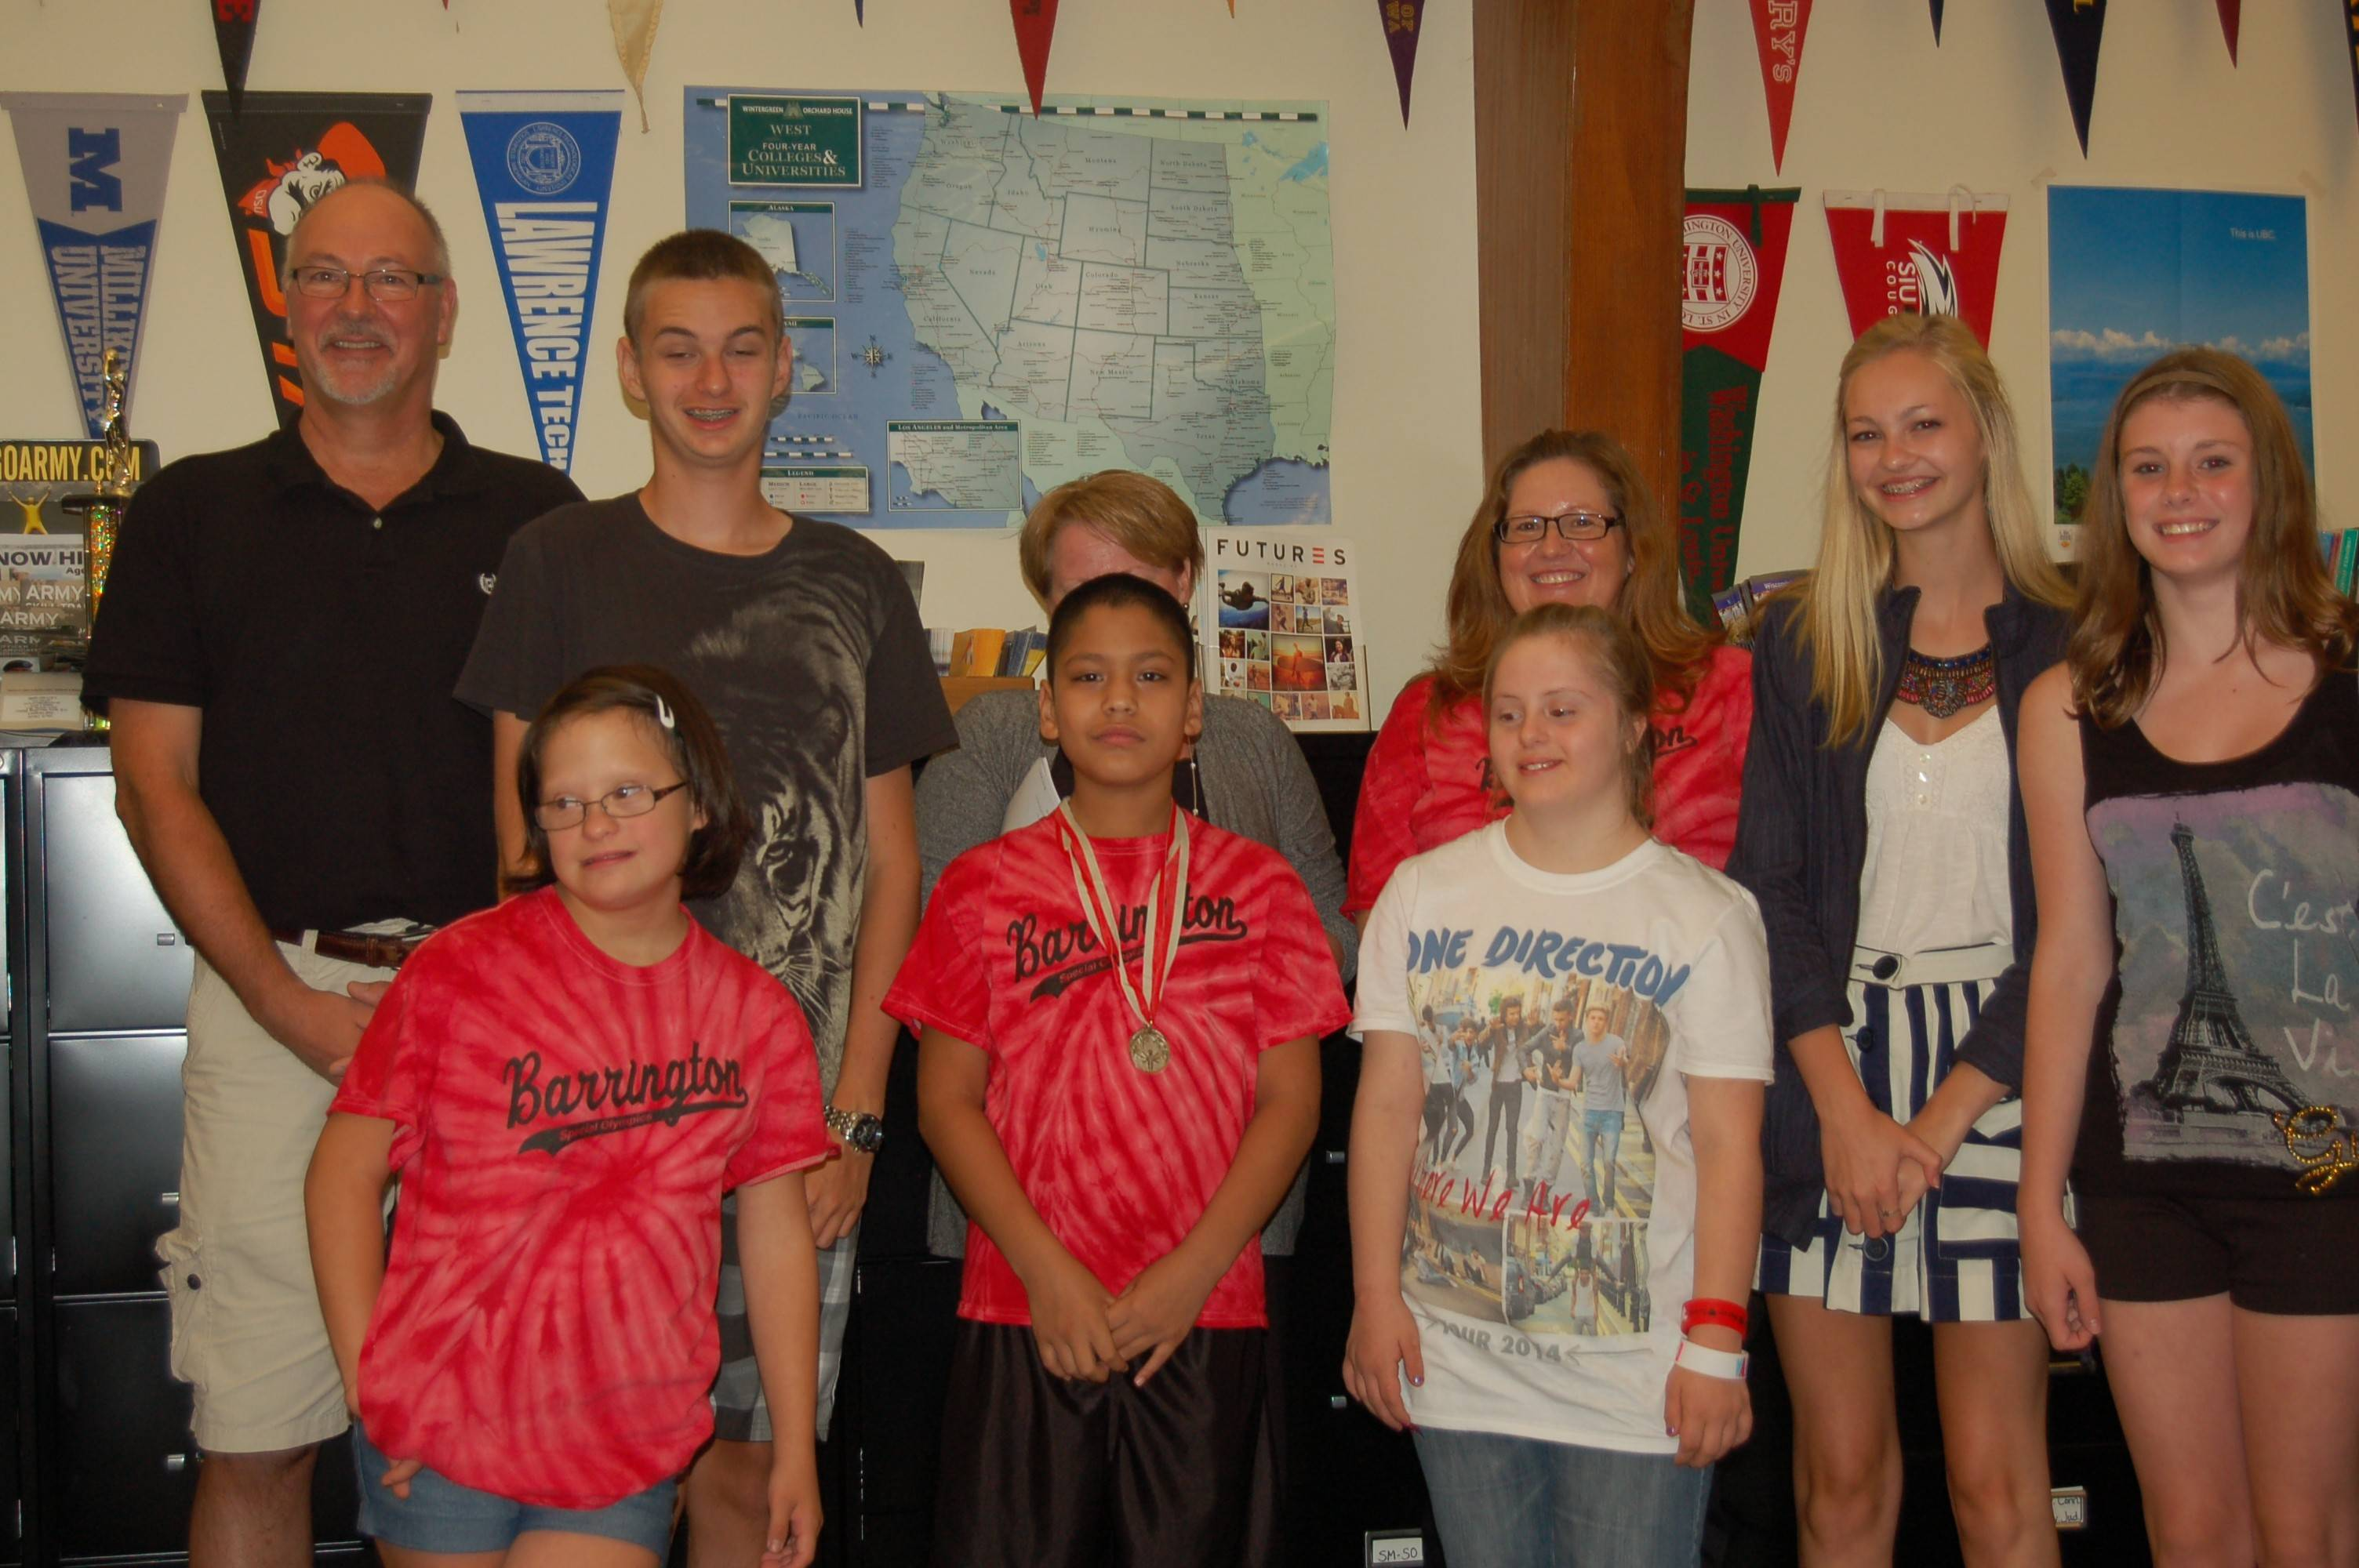 Some members of the Barrington High School Special Olympics sports teams, including student athletes, head coaches and peer coaches, pose for a photo during a Barrington Area Unit District 220 school board meeting at Barrington High School Tuesday night.